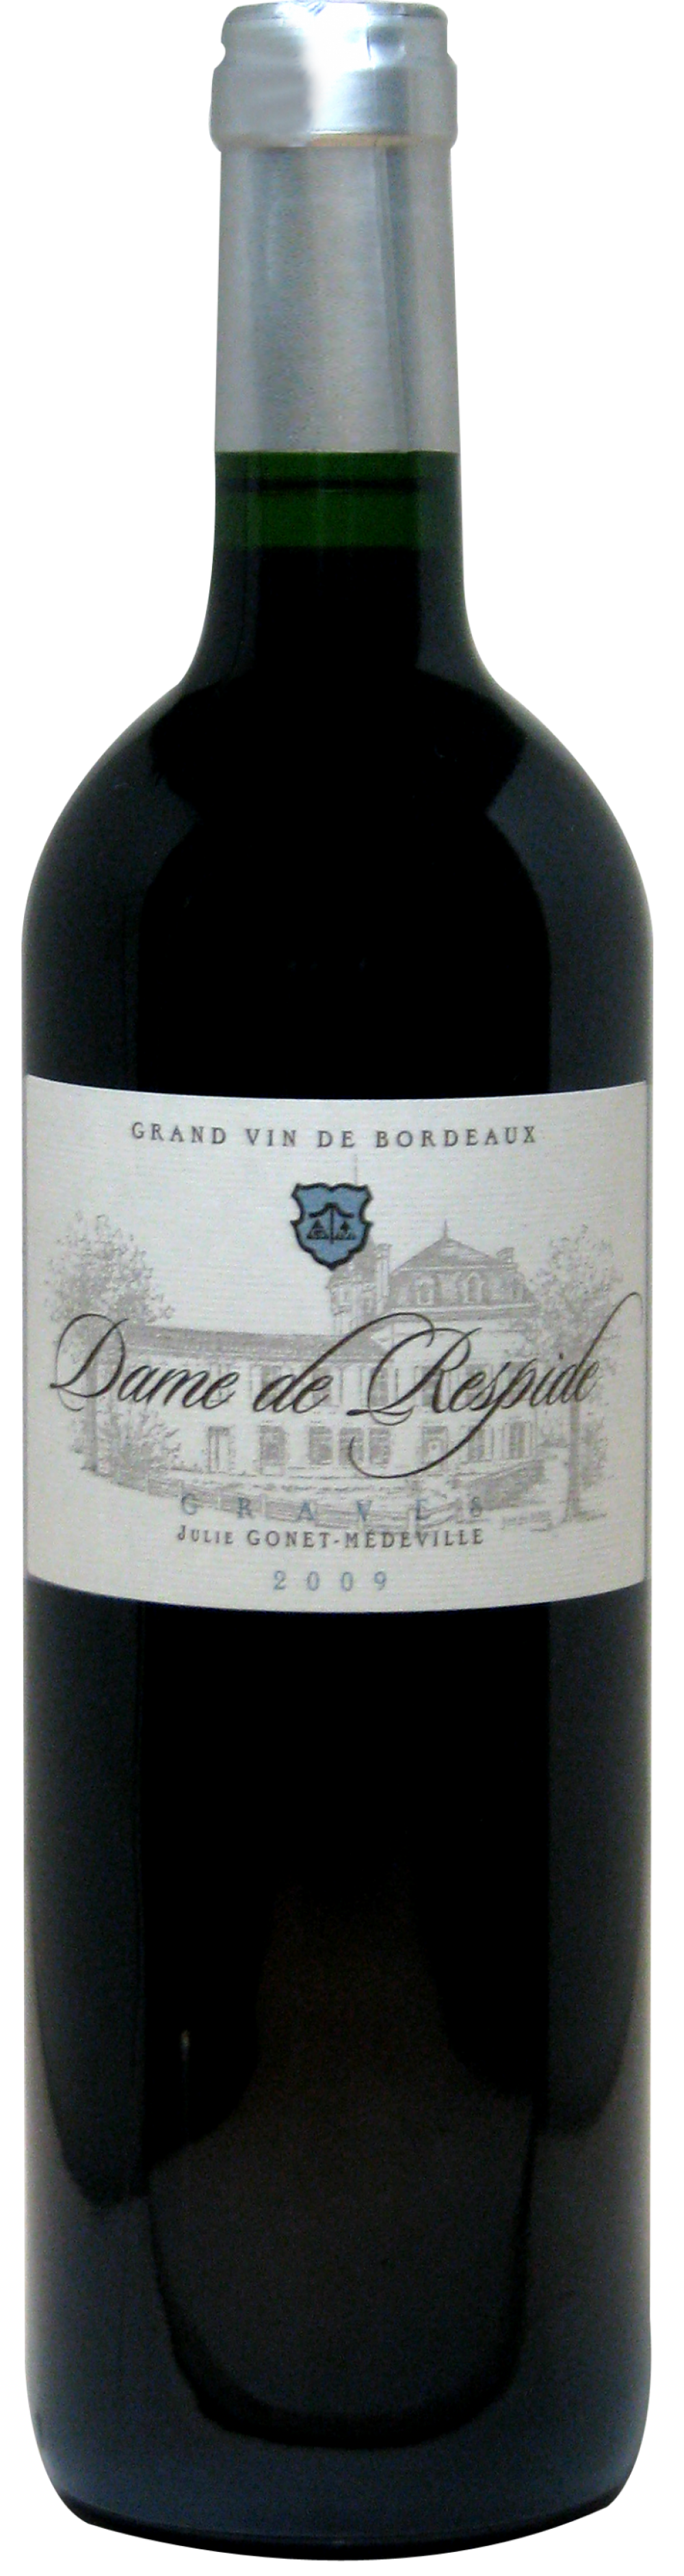 files/images/wines/France/chateau-respide-medeville-bordeaux/2FBGDR87_pic_big.png